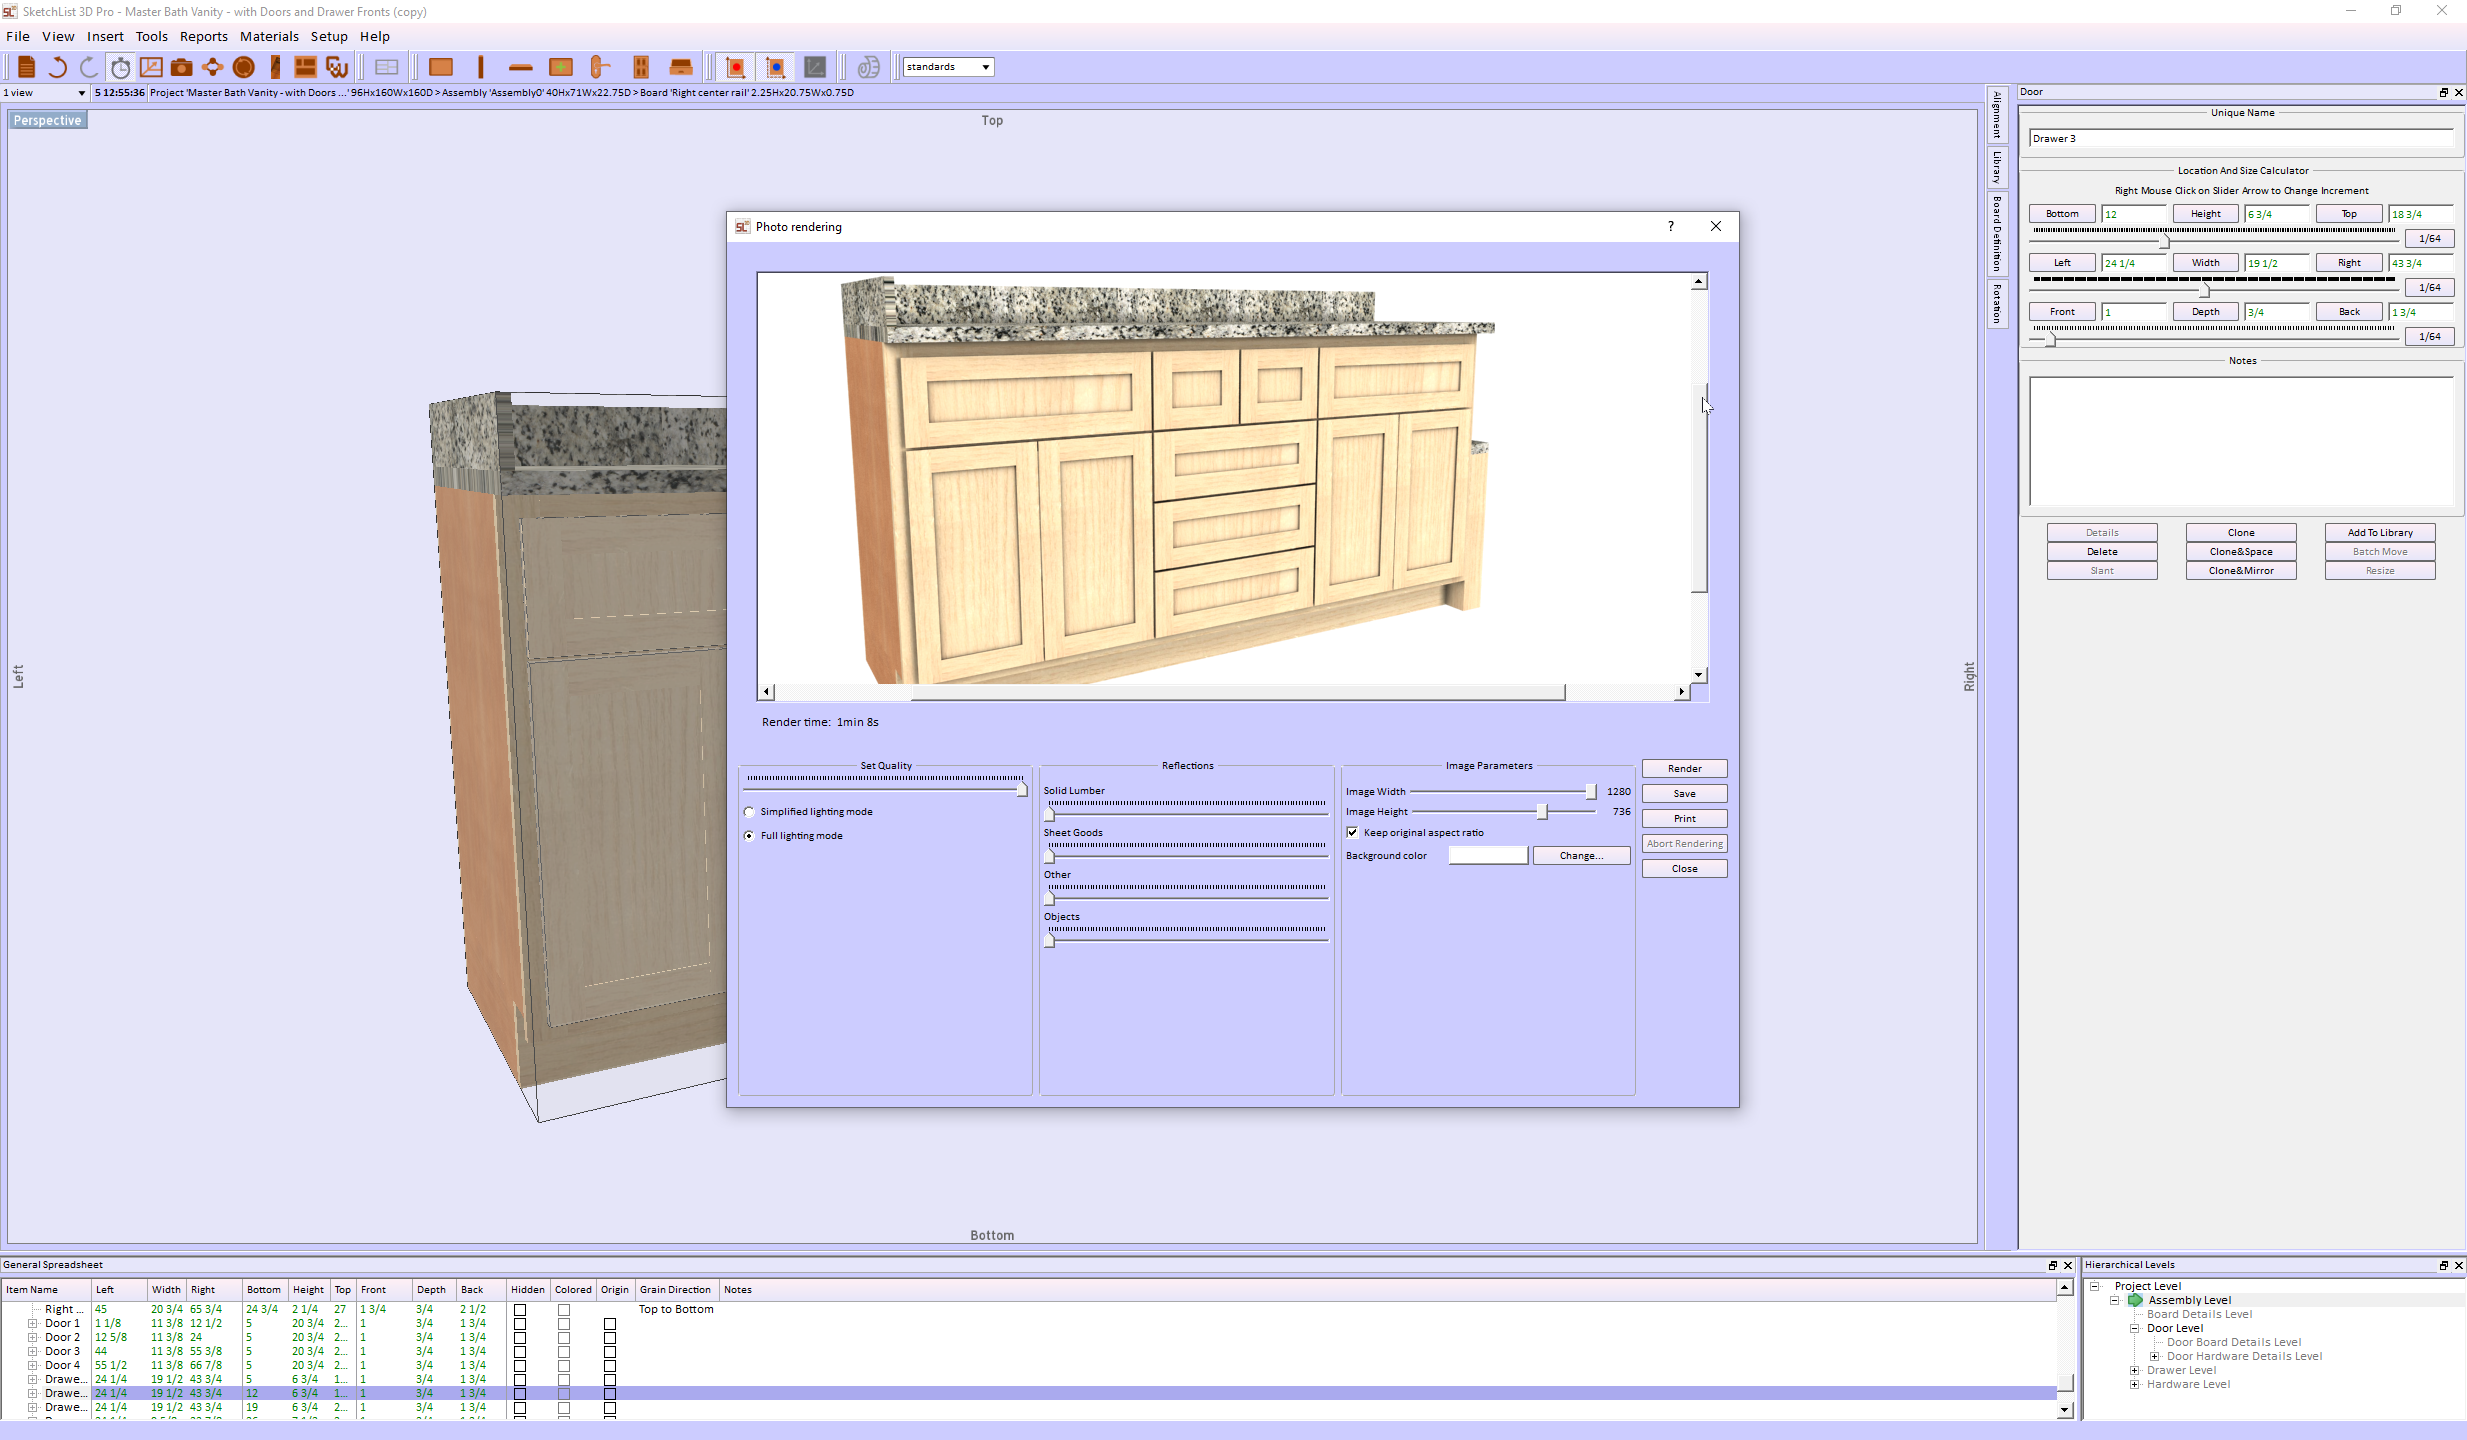 woodworking software image of cabinet